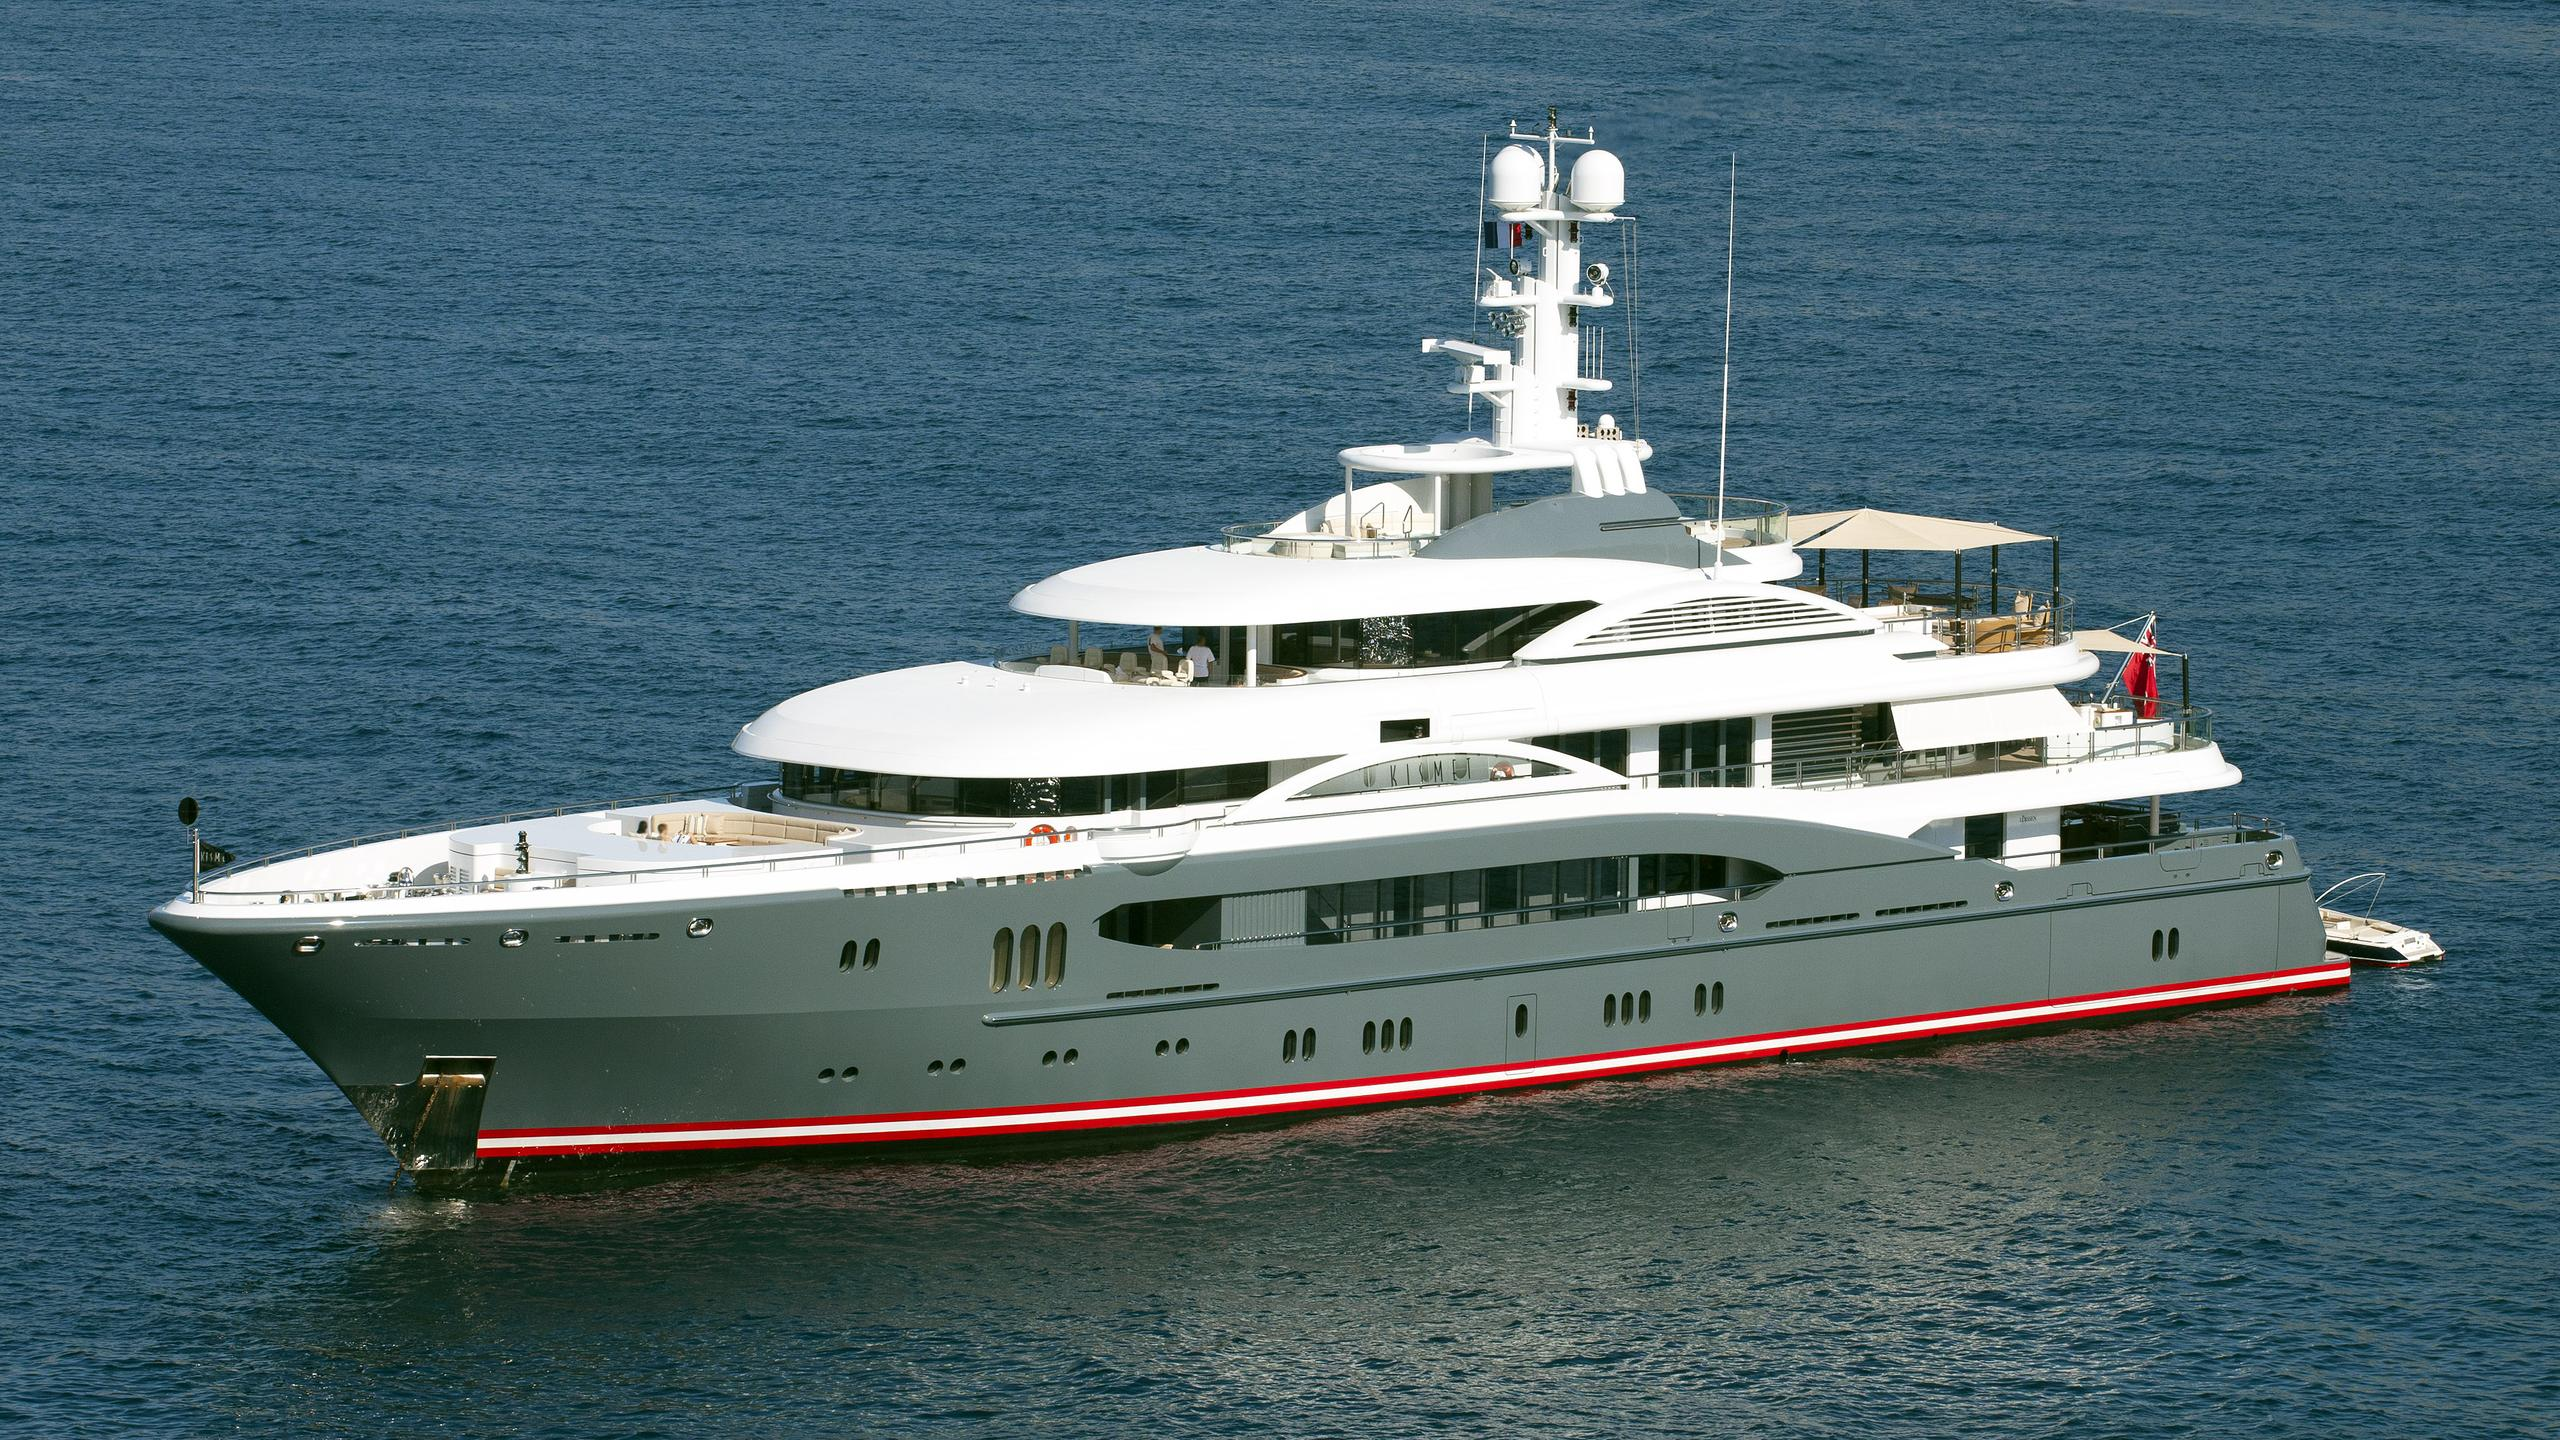 global kismet motor yacht lurssen 2007 74m half profile before refit